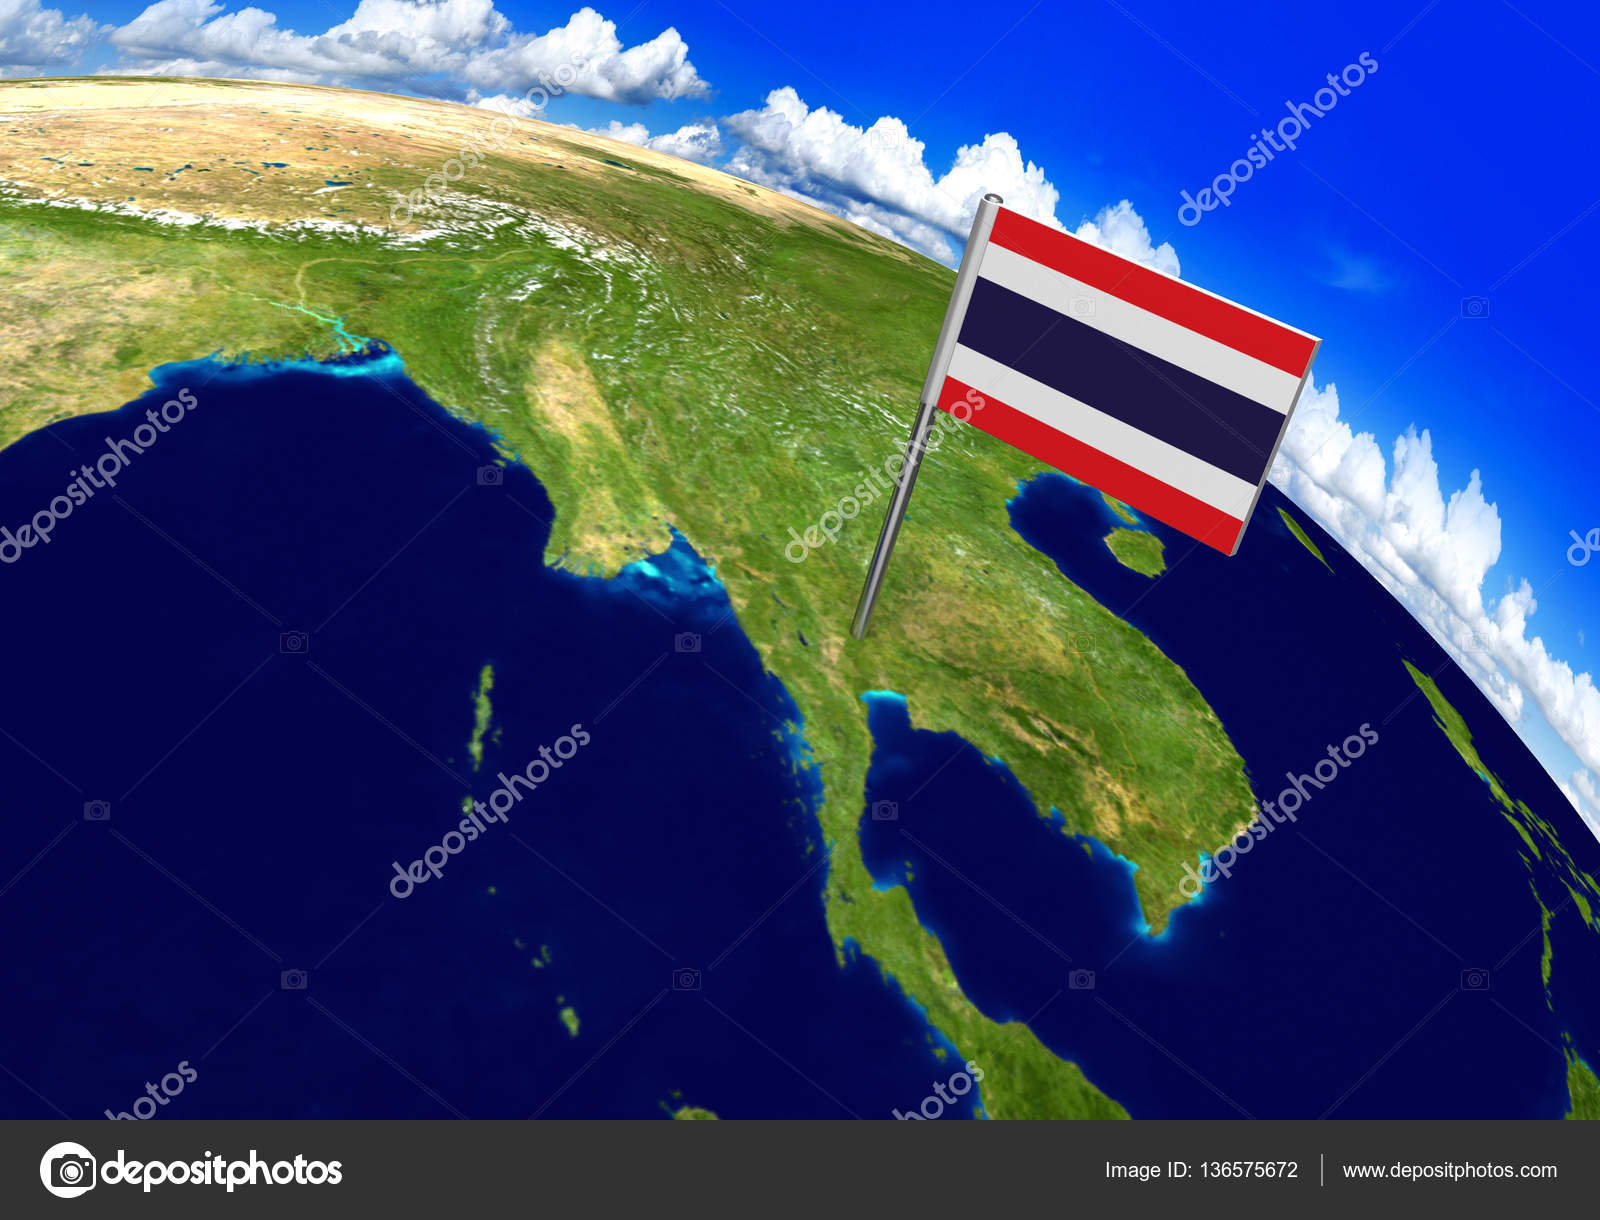 Flag marker over country of thailand on world map 3d rendering 3d world render with the thai flag over the location of thailand parts of this image furnished by nasa photo by kagenmi gumiabroncs Gallery